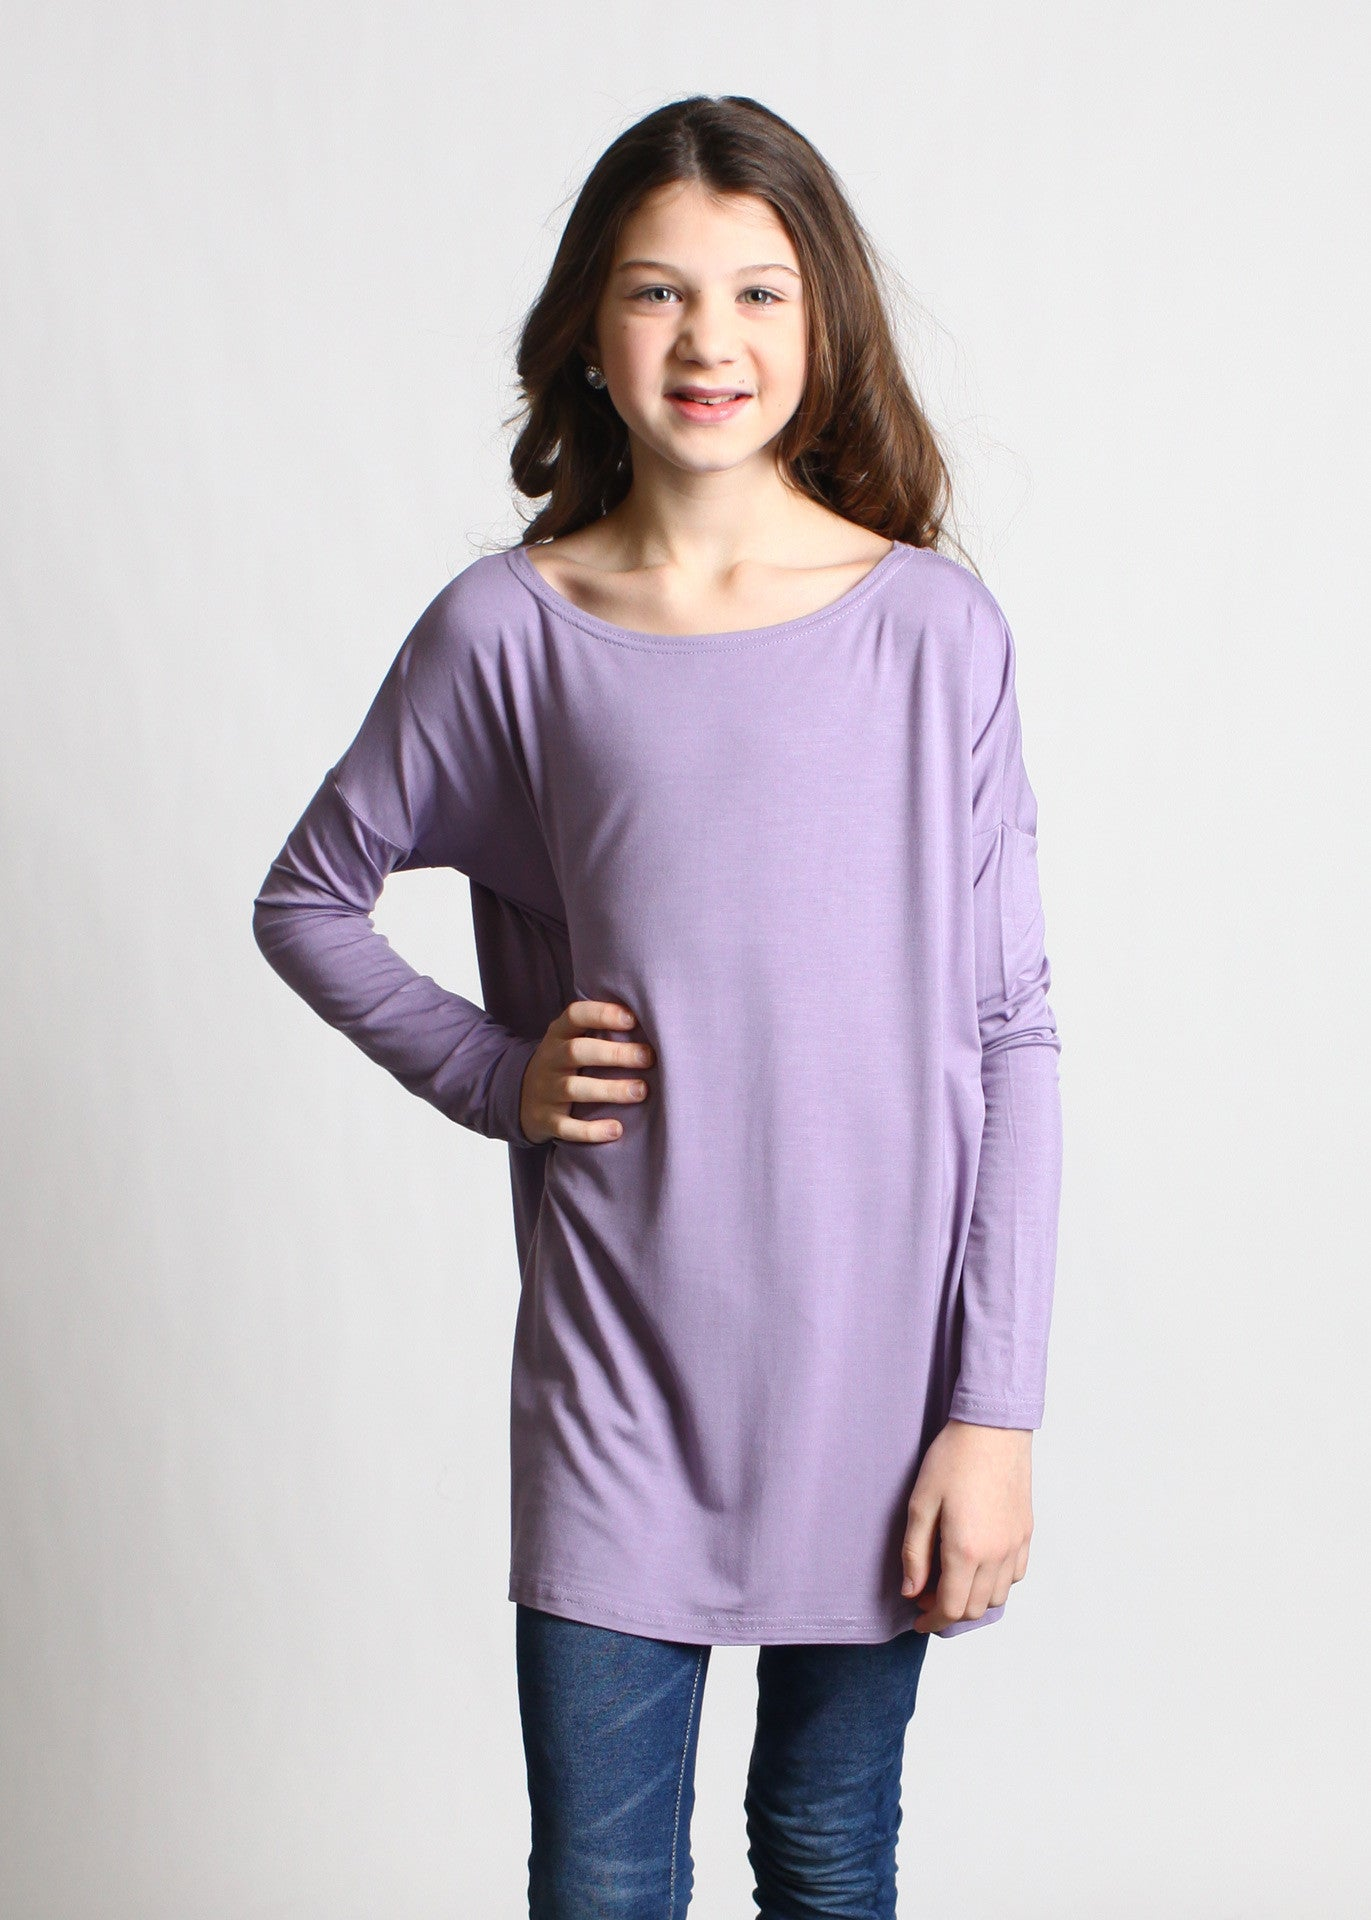 Original Kids Long Sleeve Top - Piko Clearance Center - 14